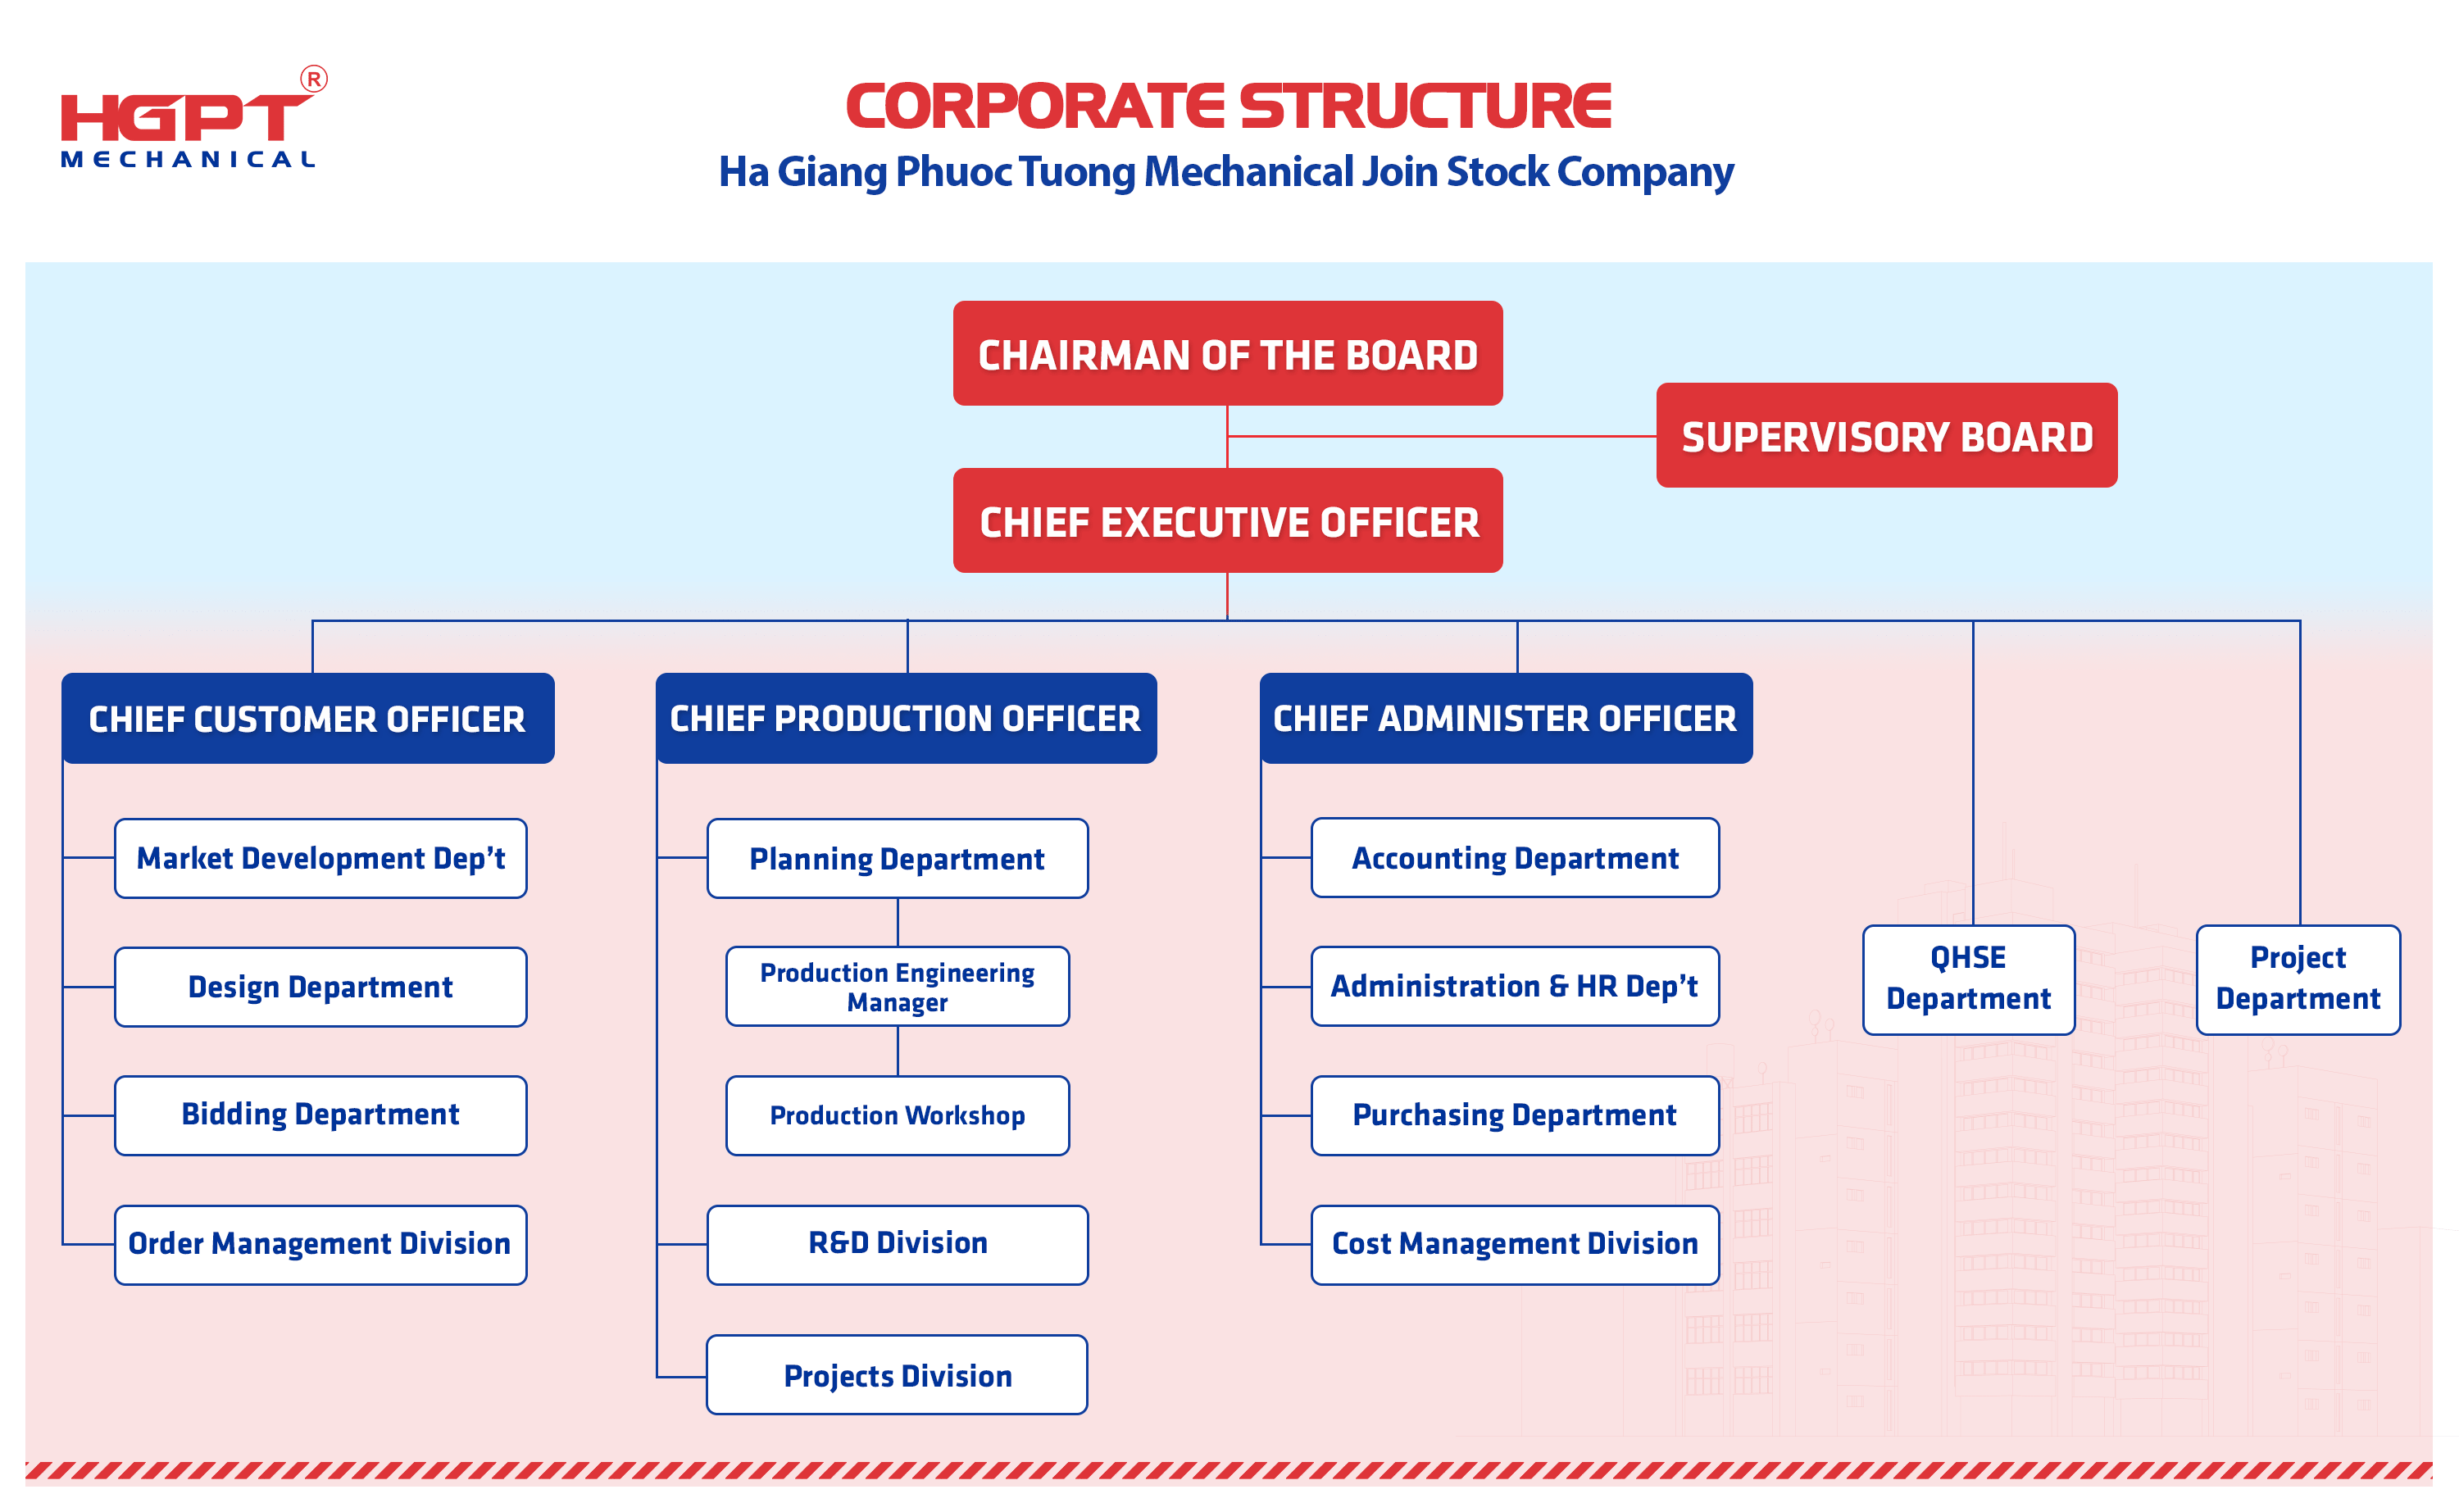 Corporate Structure HGPT Mechanical